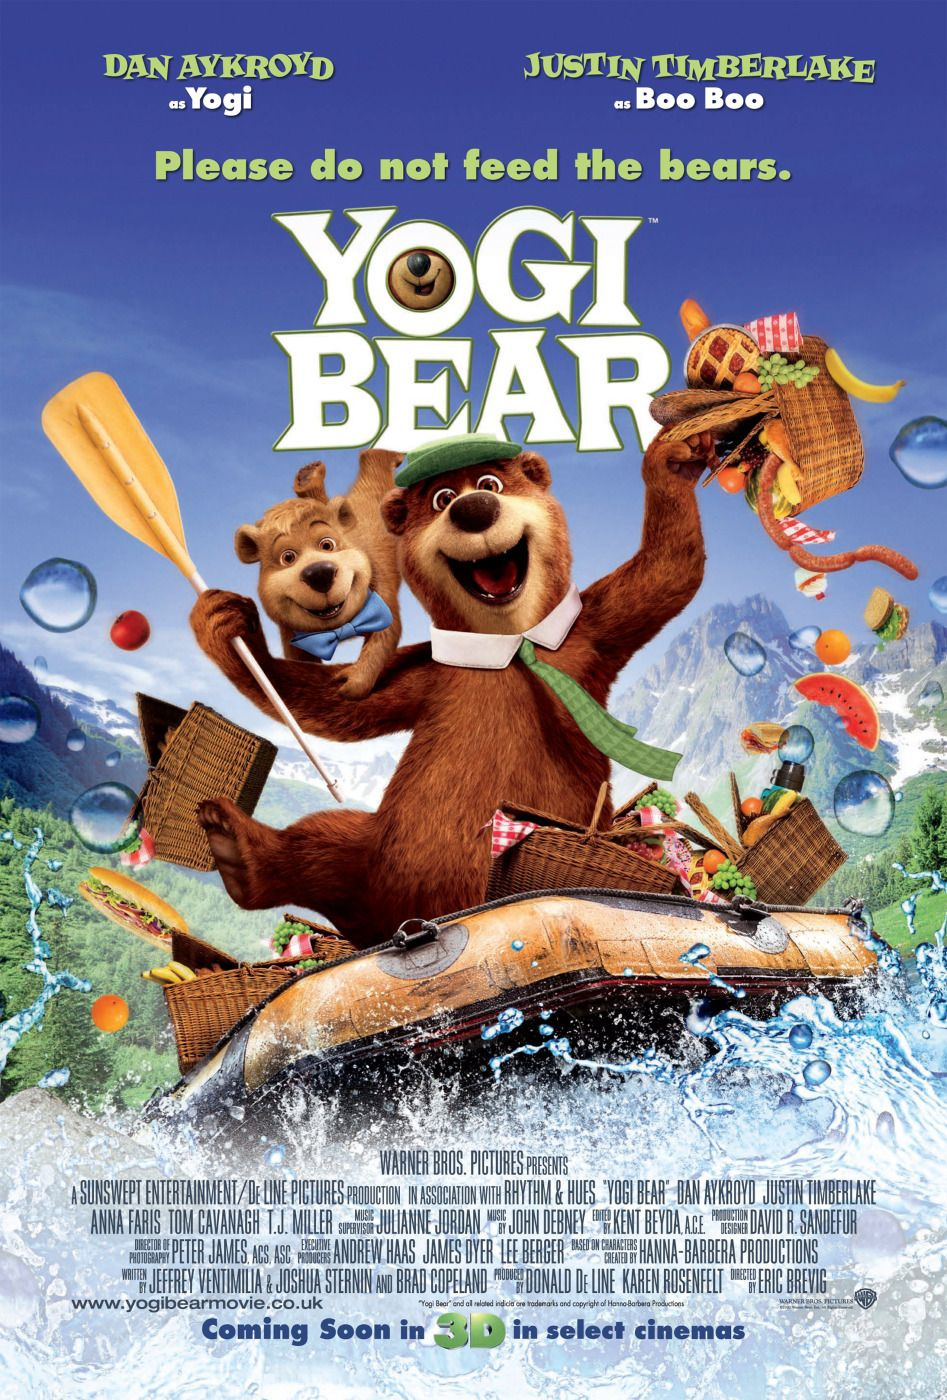 Yogi Bear Movie Poster Controversy Yogi Bear Poster 3 - H...